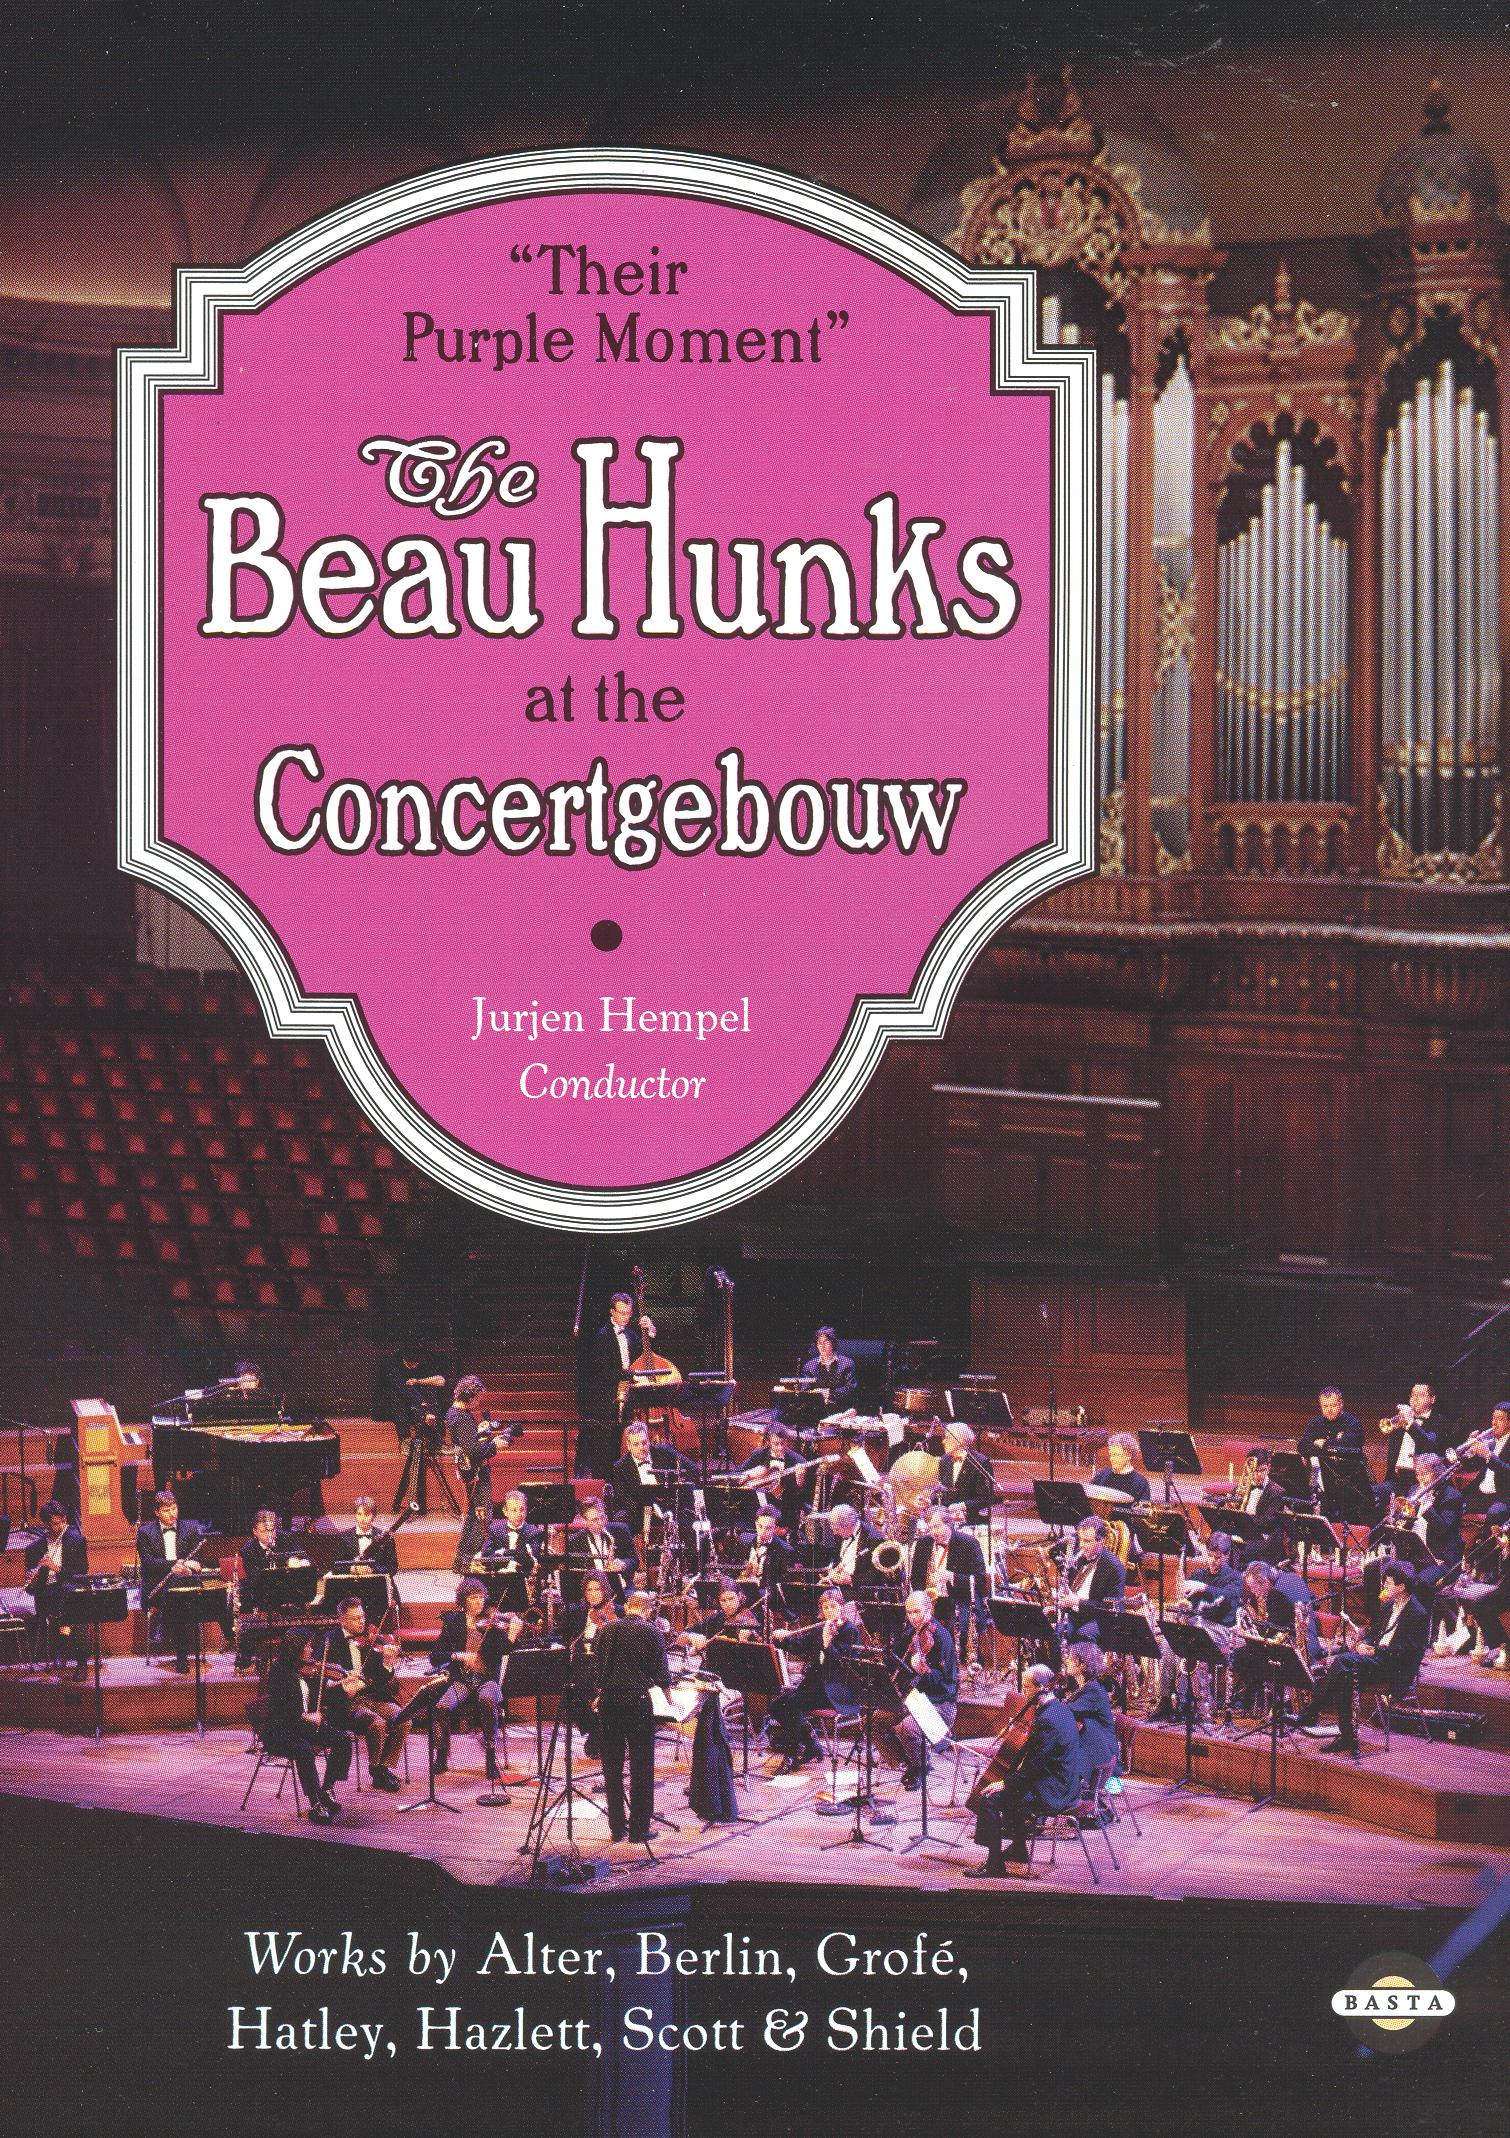 Beau Hunks: Live at the Concertgebouw